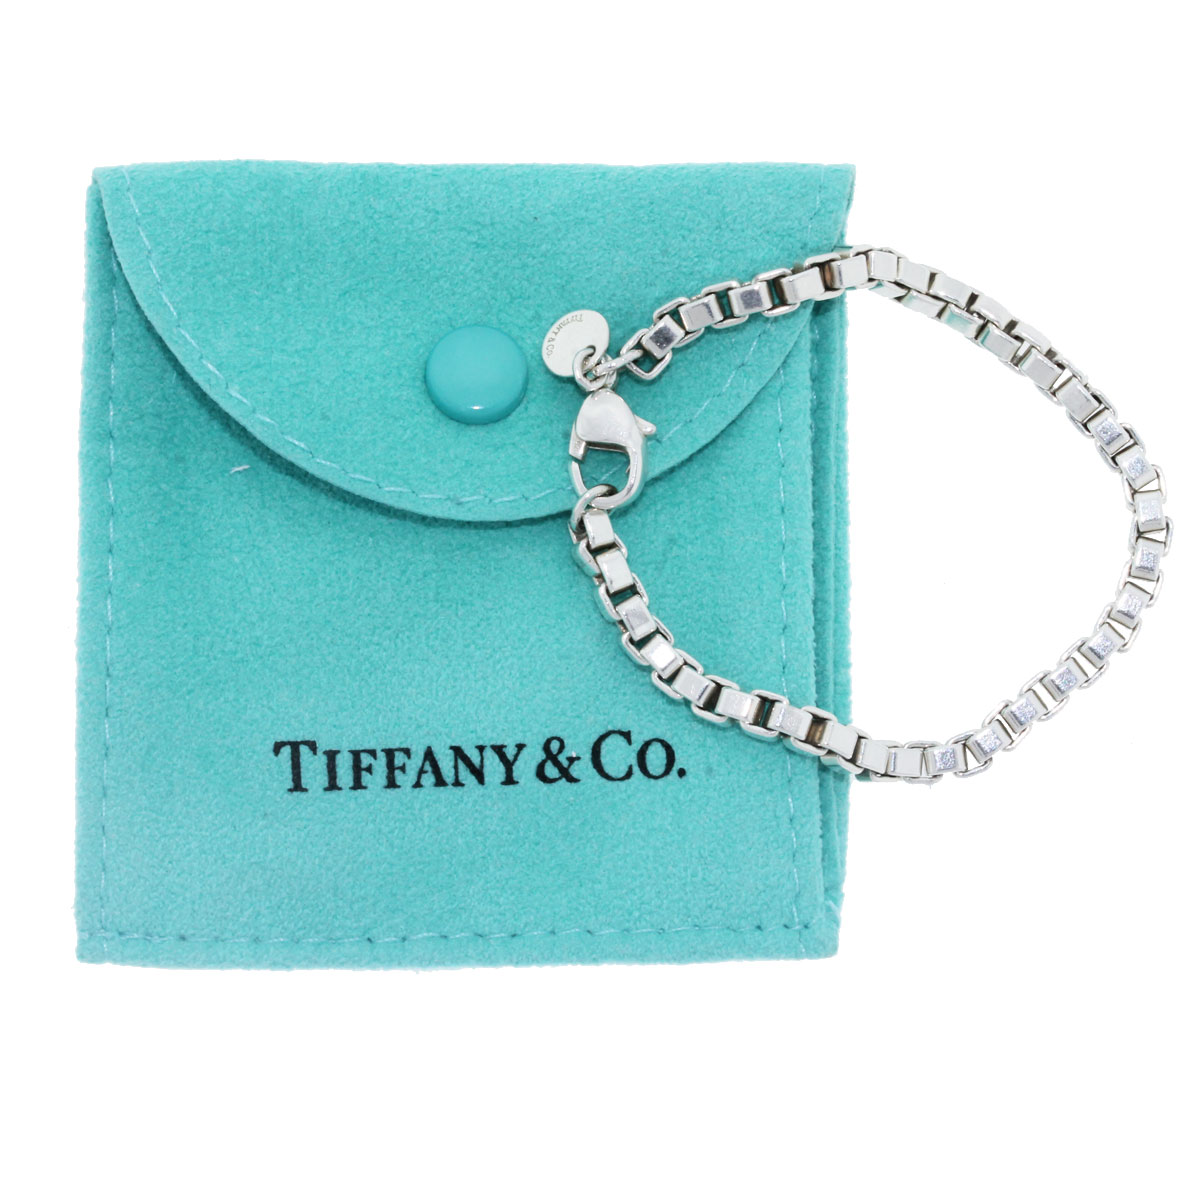 dating tiffany silver Free online dating and matchmaking service for singles 3,000,000 daily active online dating users.